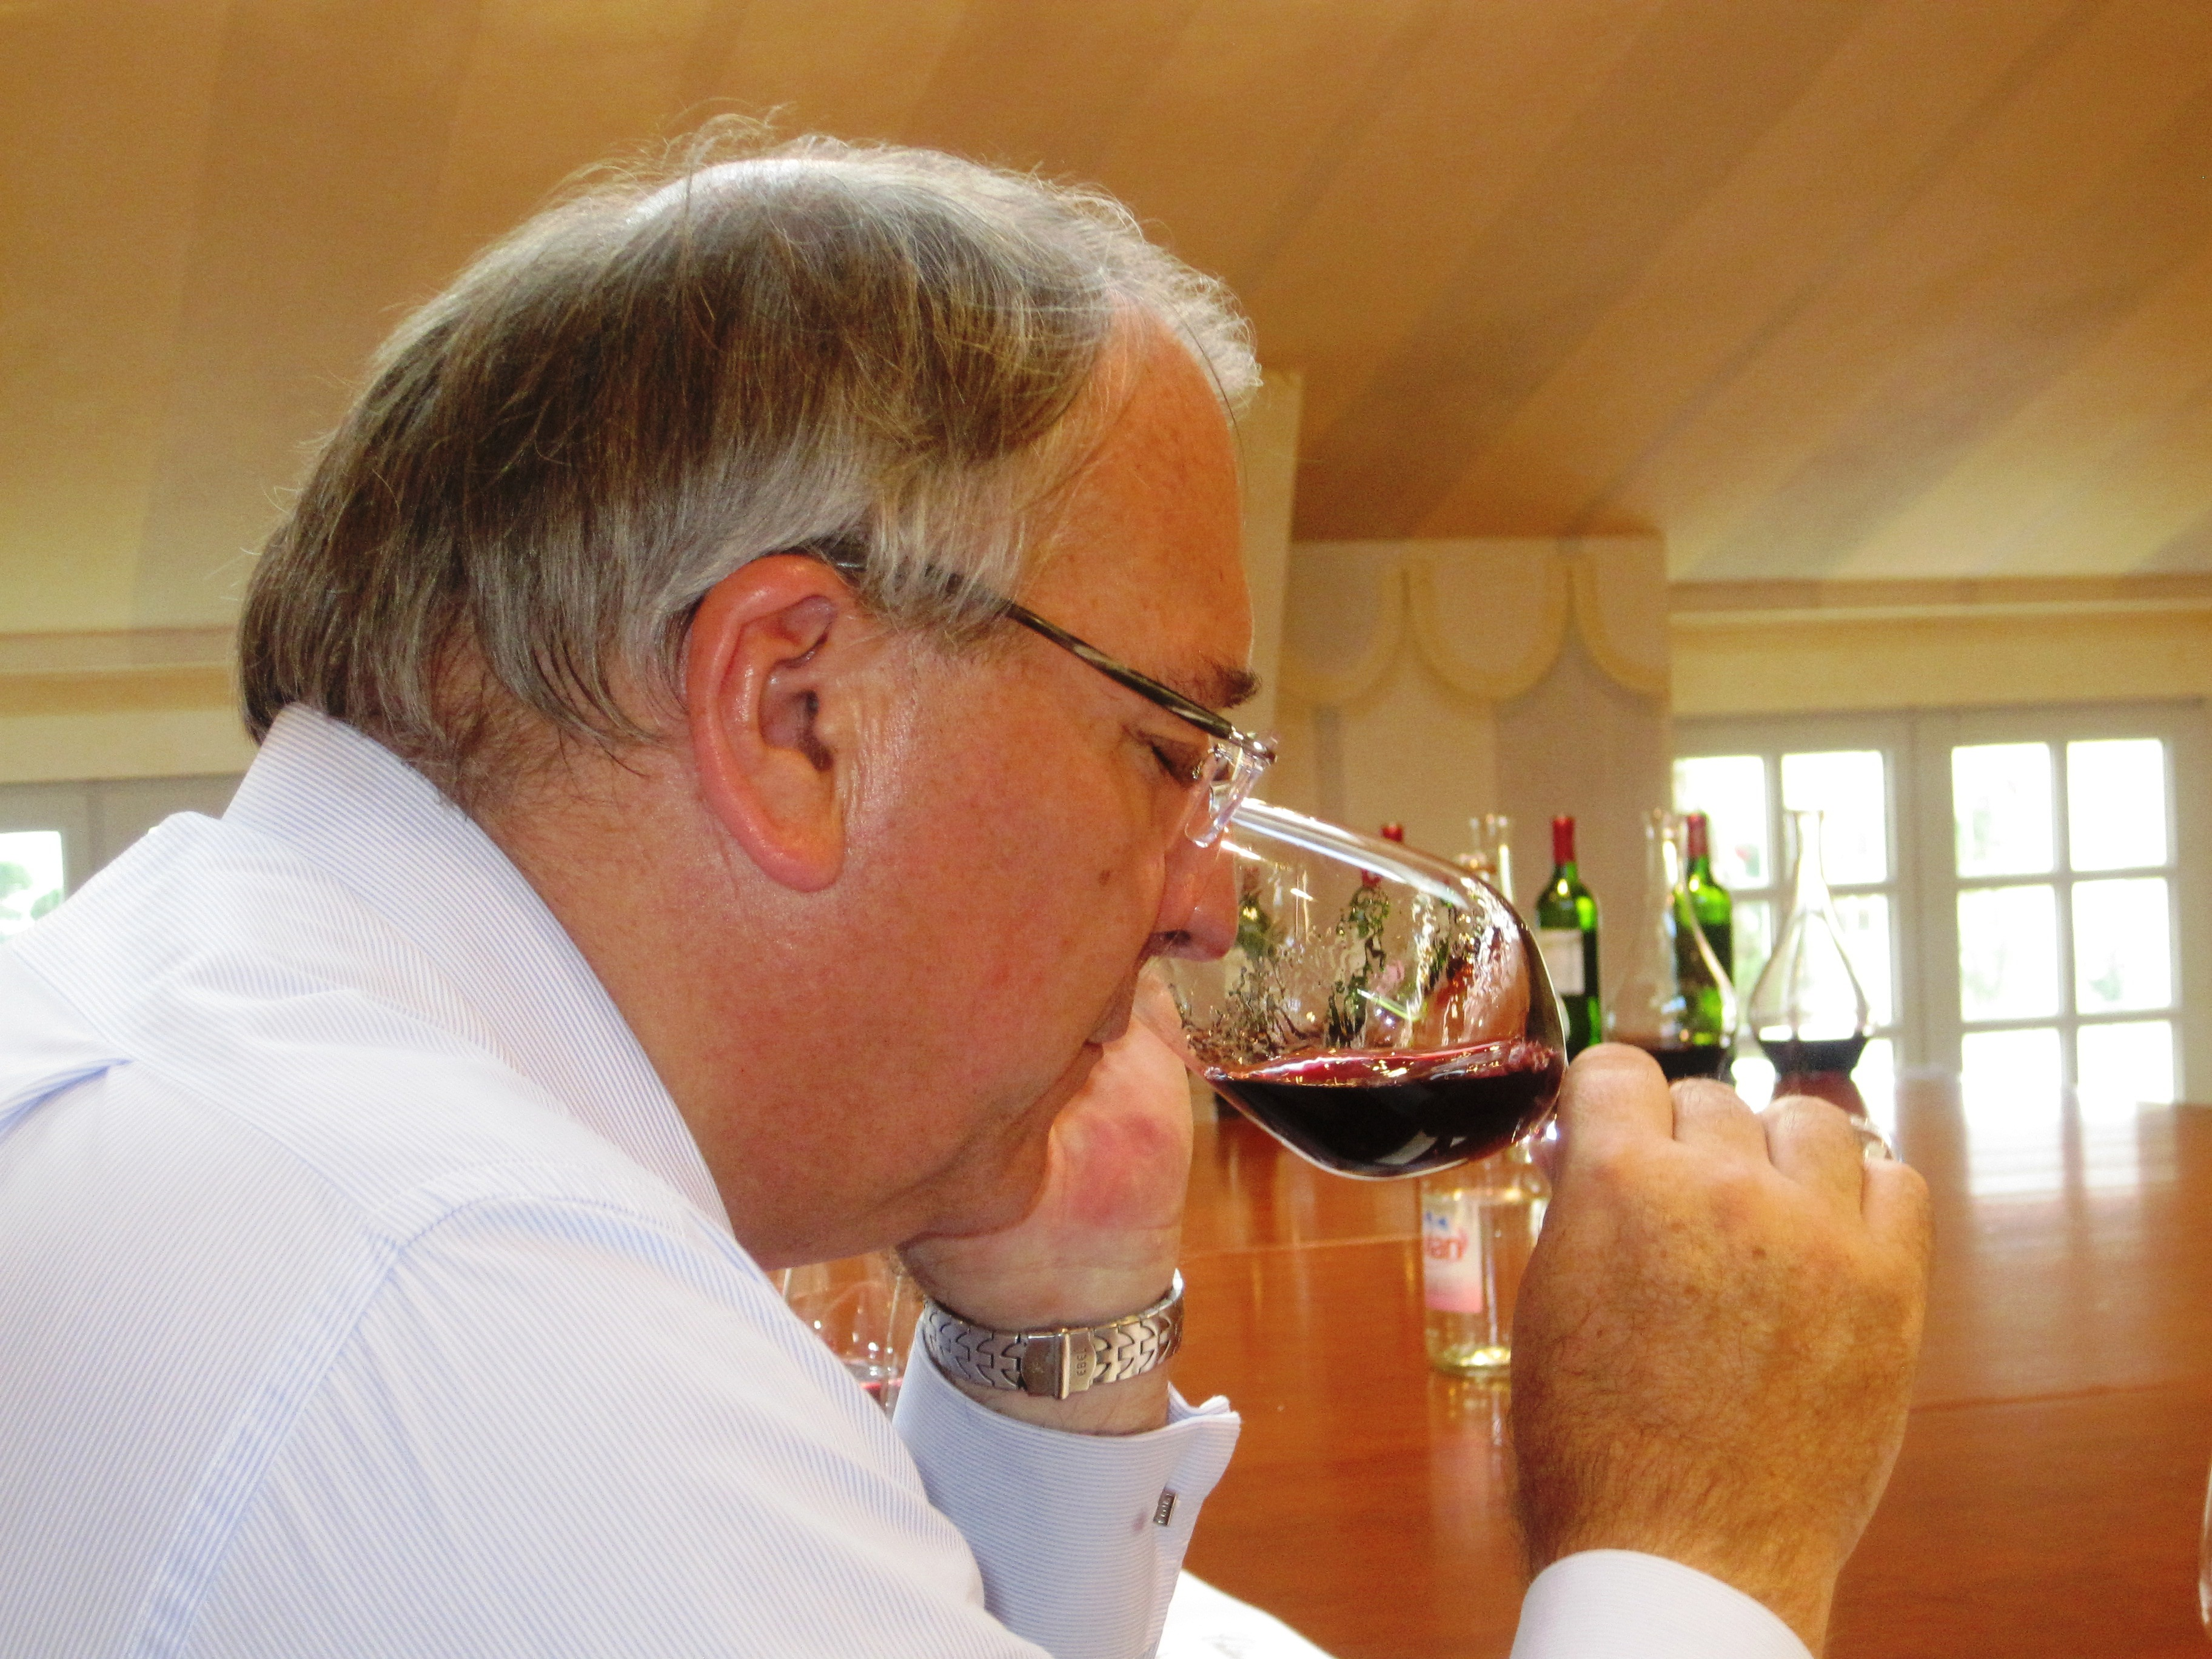 Bordeaux wine making, is it made better today than Yesterday?